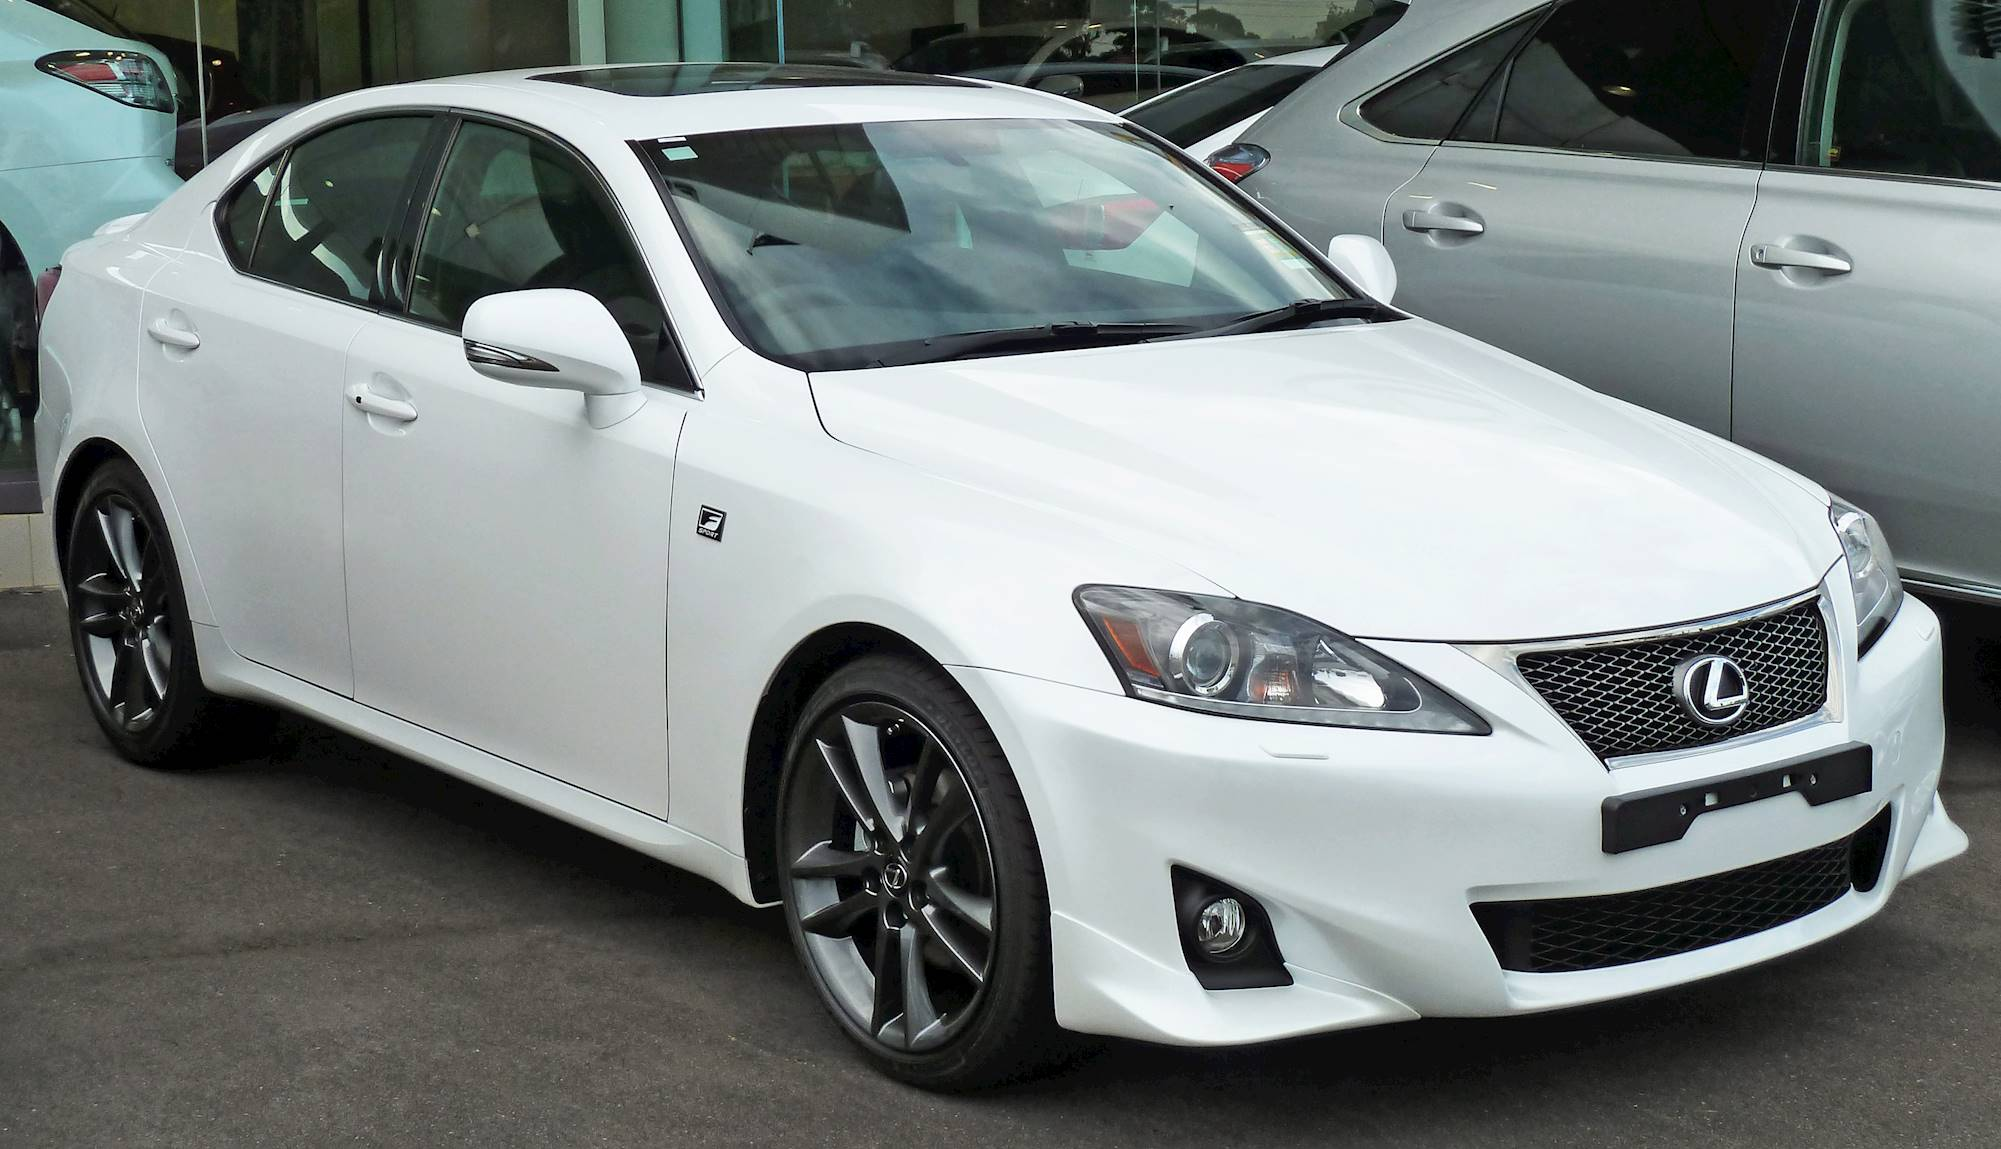 2011 lexus is is 300 - sedan 3.0l auto